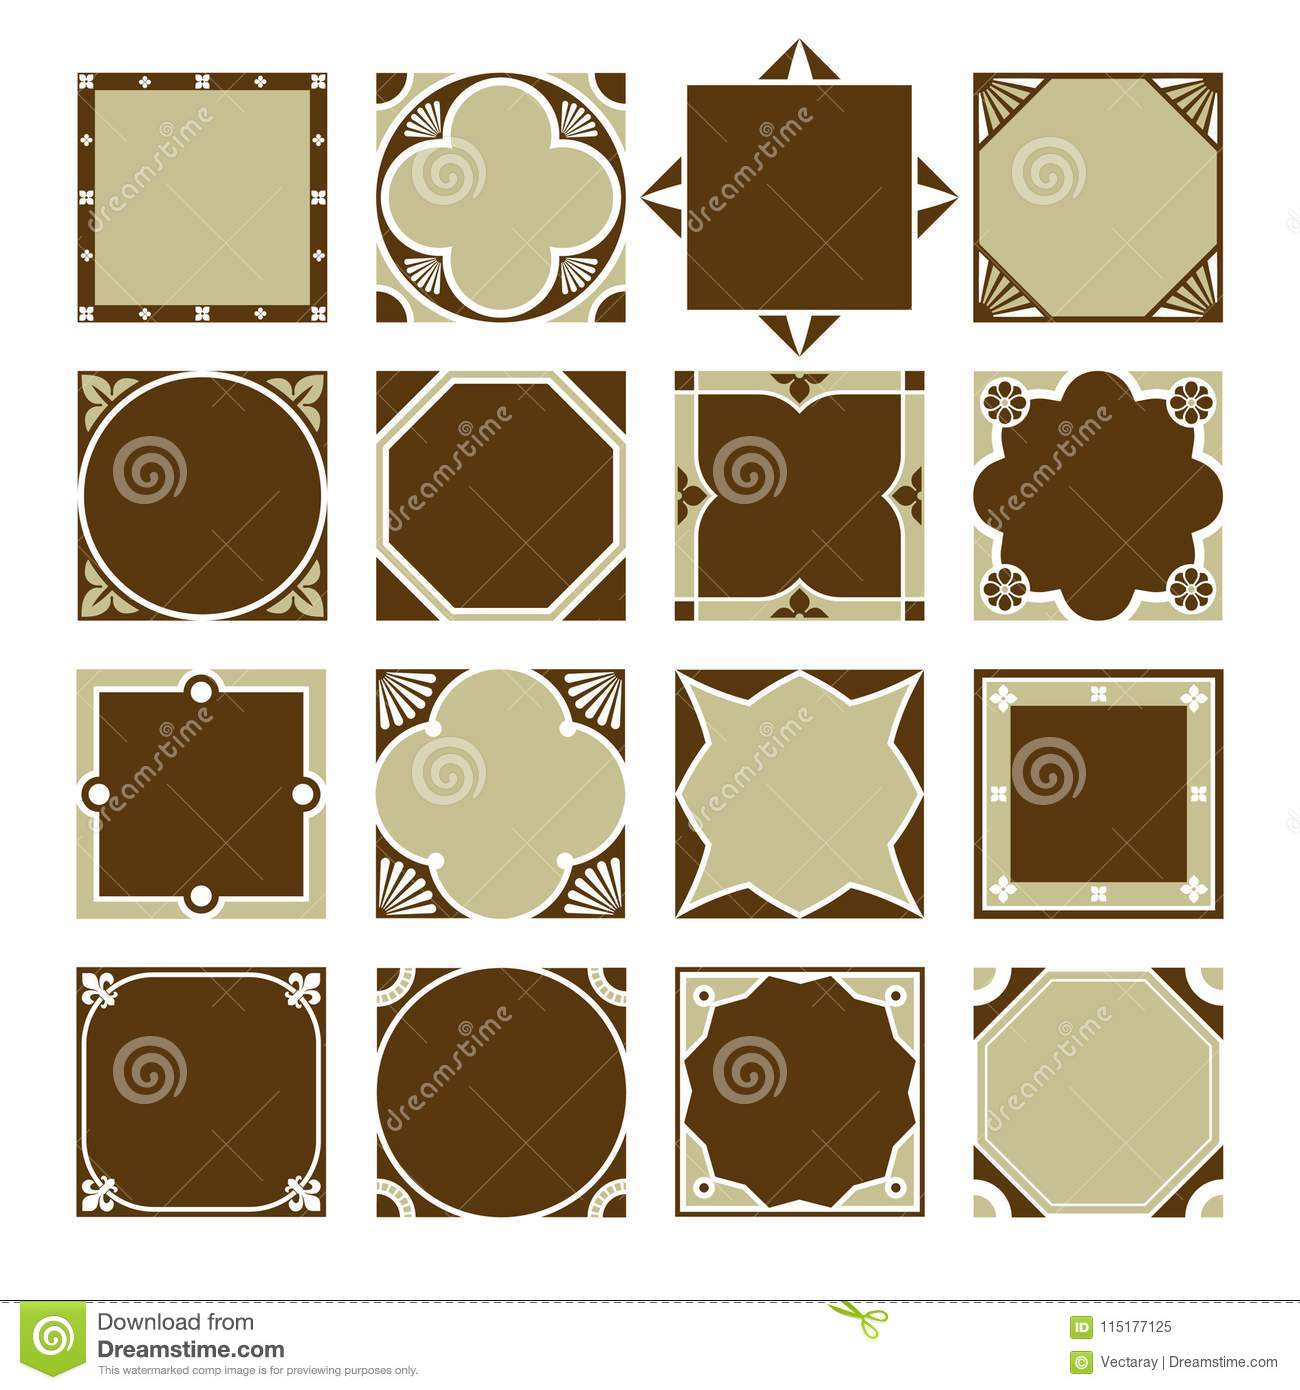 Collection Of Vintage Square Decorative Border Frames. Stock ...